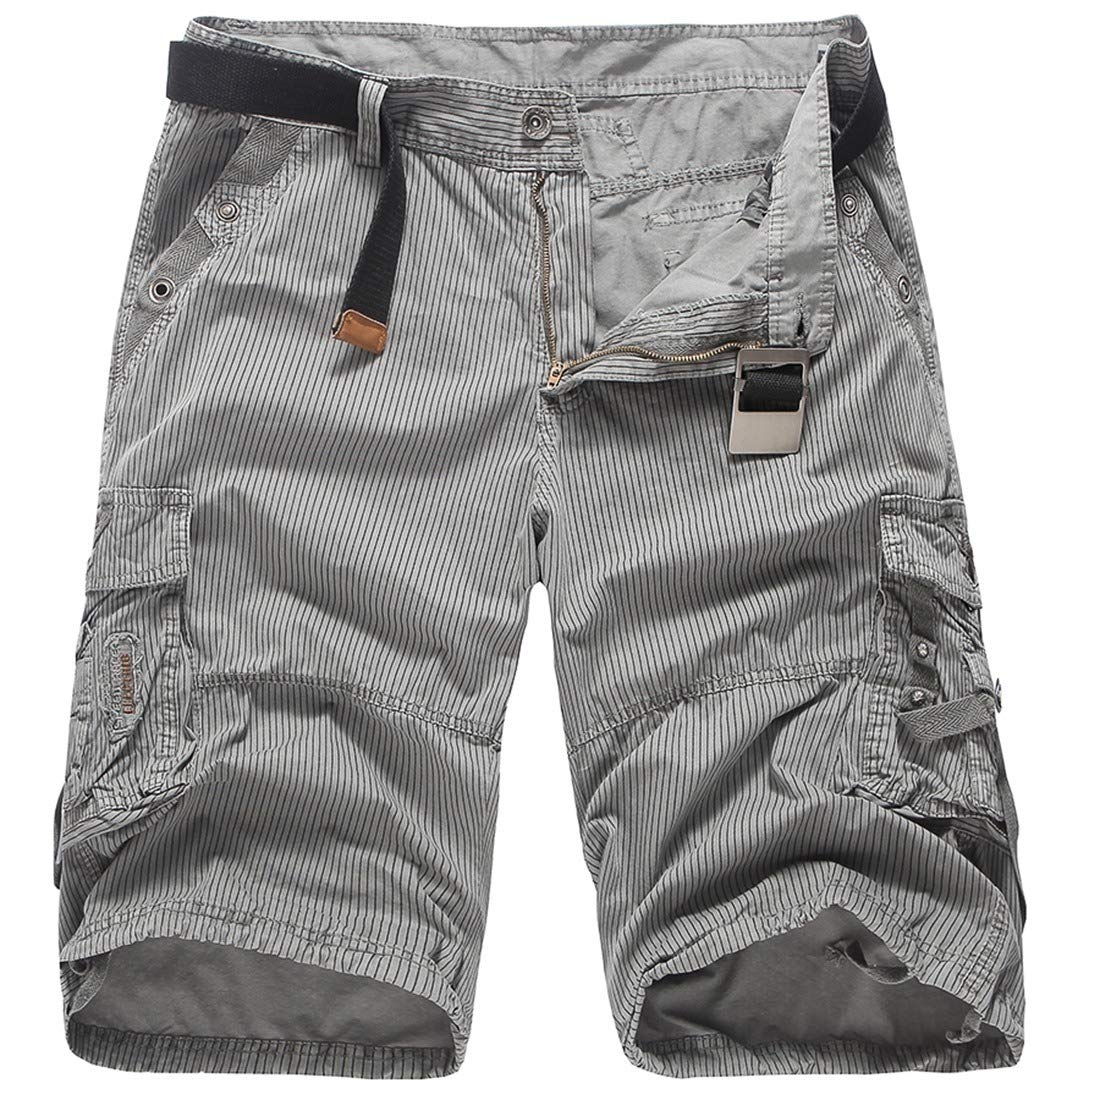 Mfasica Men Fitted Stripes Printed Cargo Pants Mid-Length Pockets Short Pants